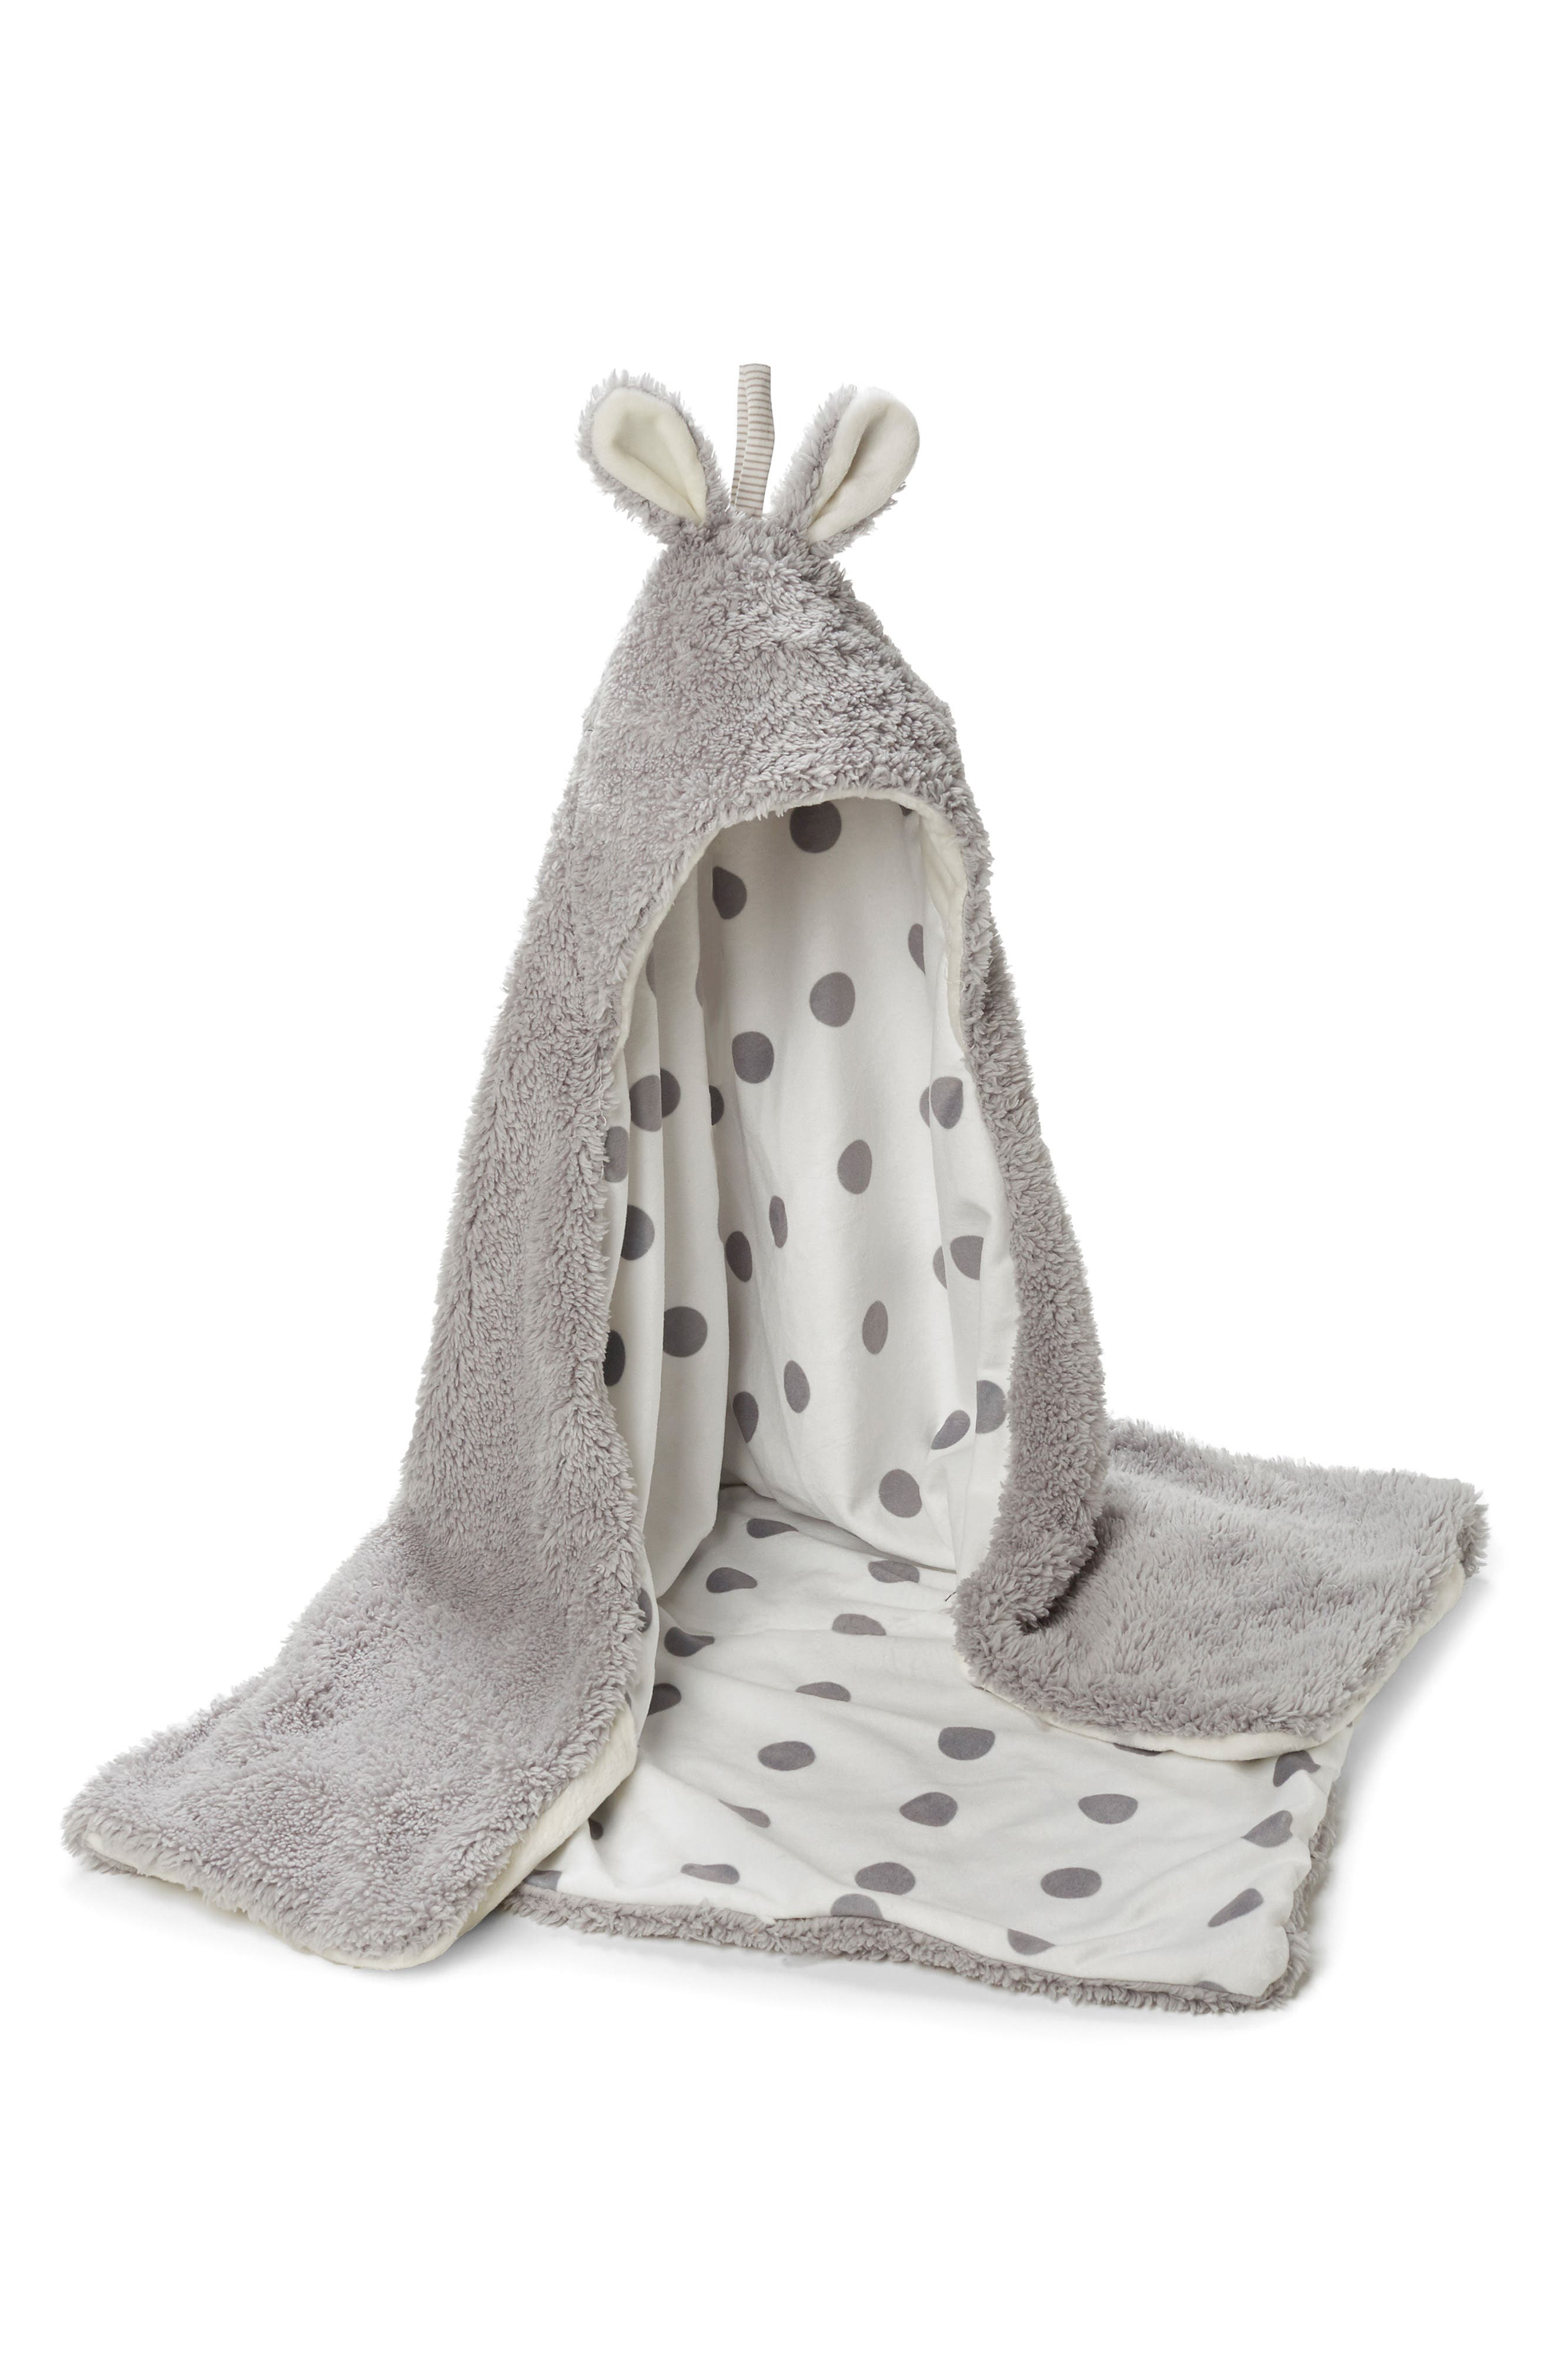 Bunny Hooded Blanket,                             Main thumbnail 1, color,                             030